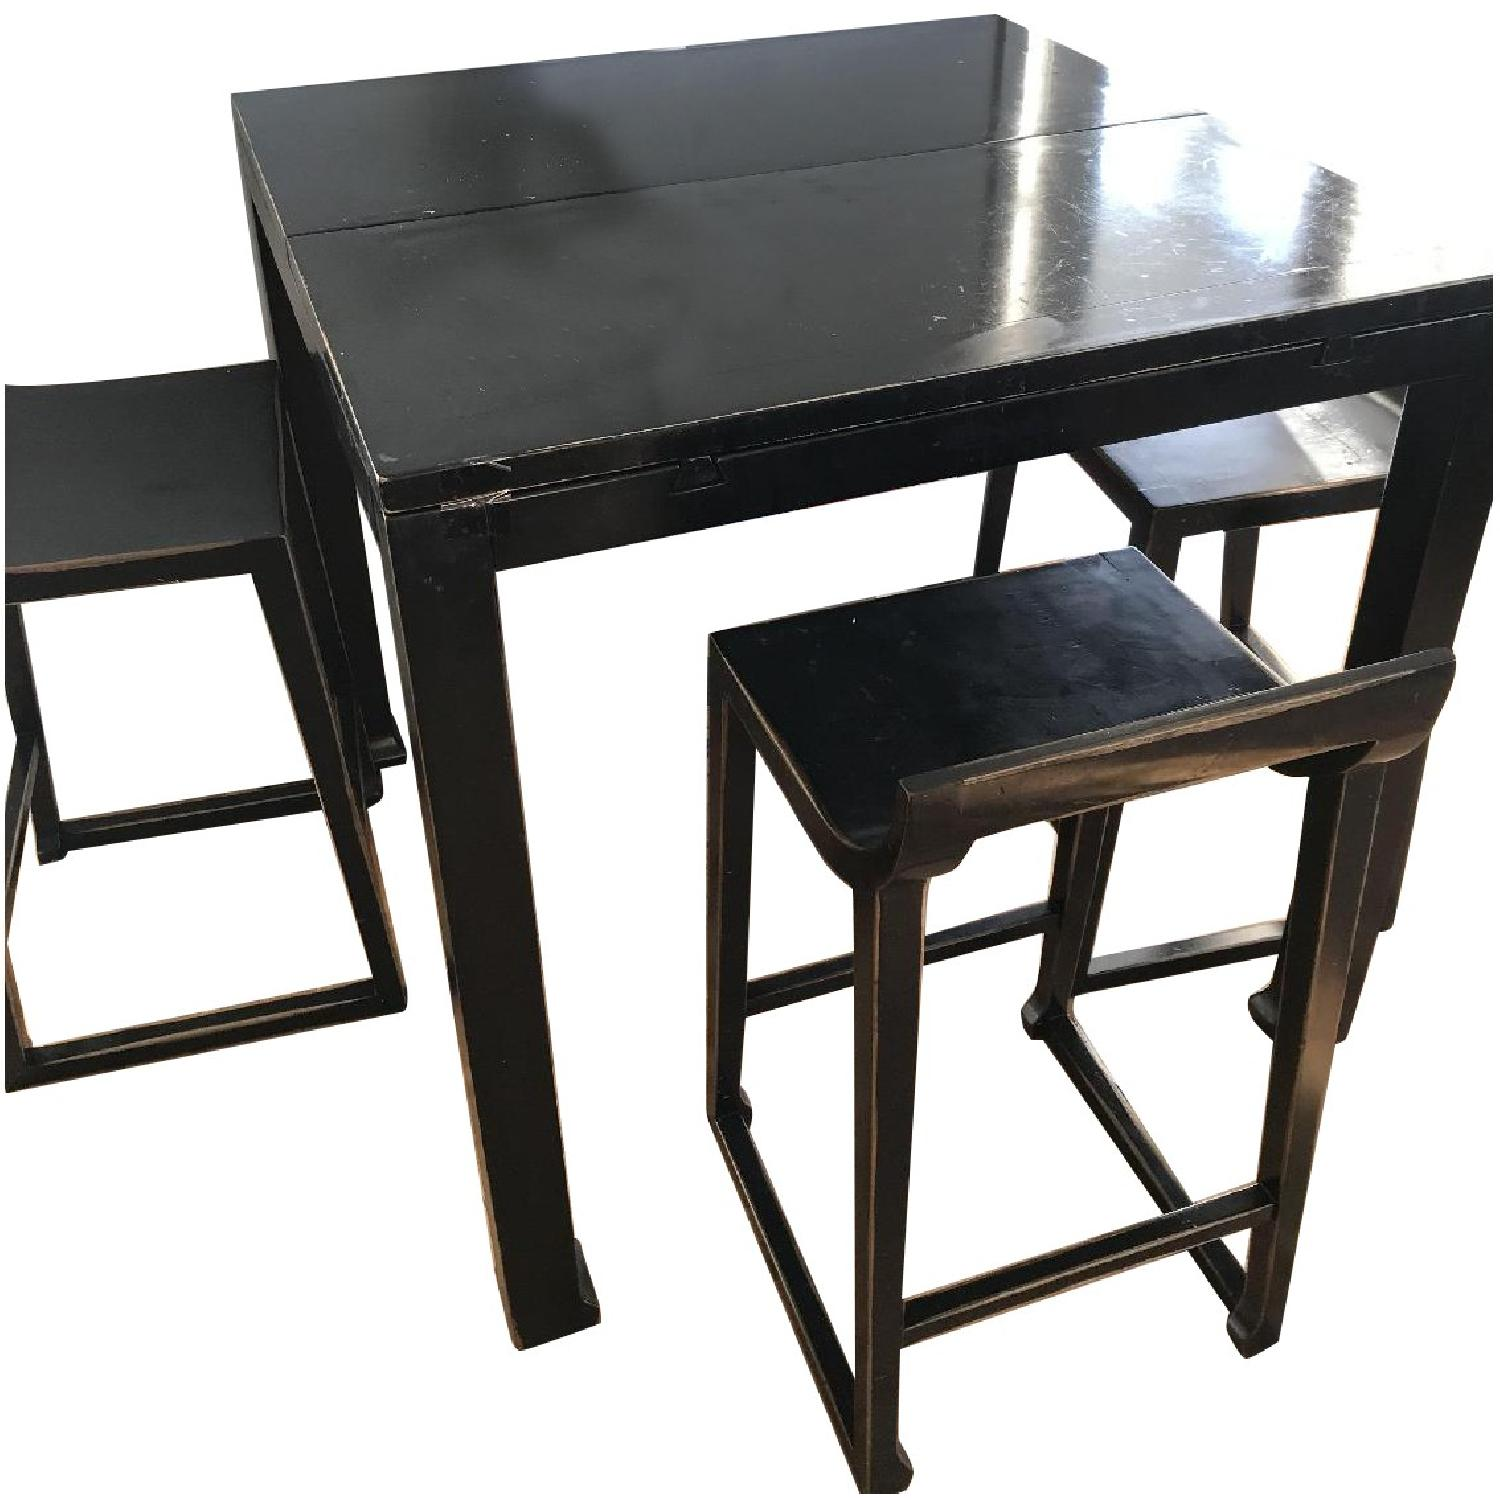 Selfridges Foldable Lacquered Black Table w/ 4 Chairs